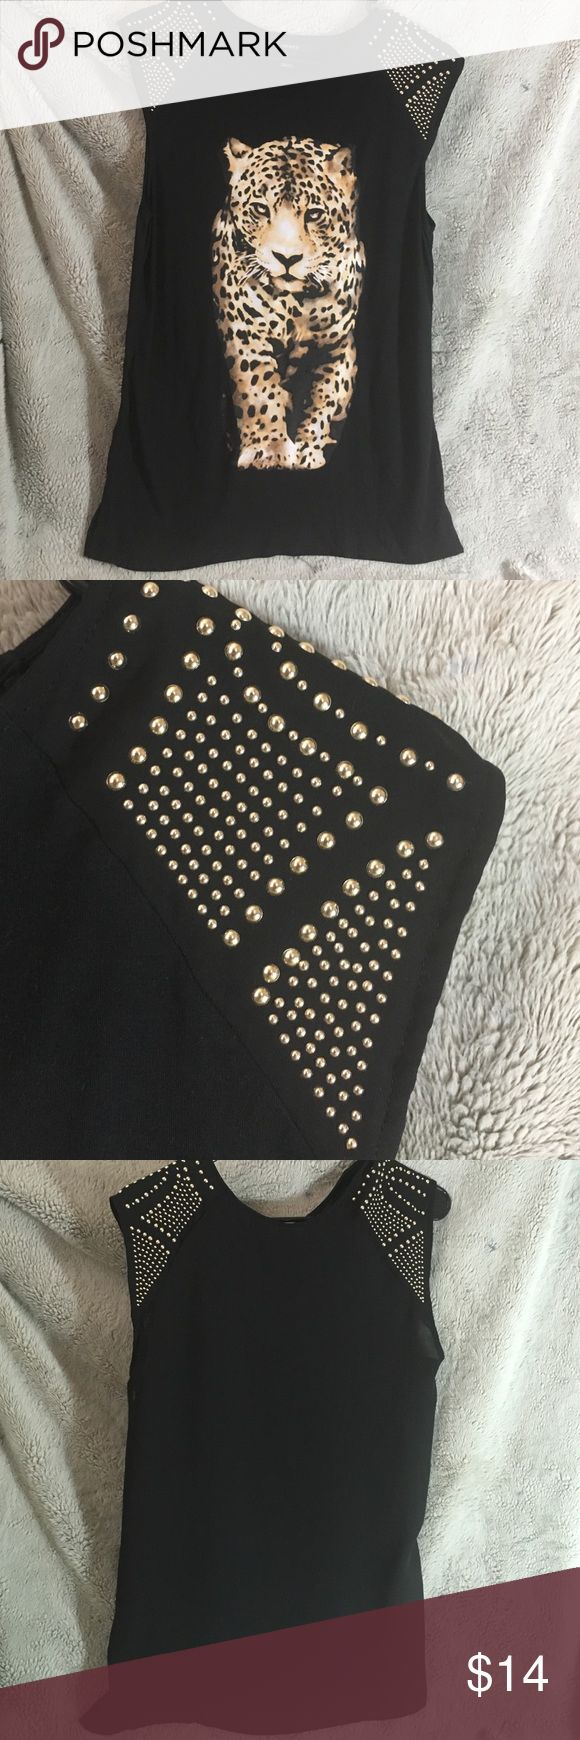 FOREVER 21 studded leopard top Cute black semi sheer top. Worn once Forever 21 Tops Blouses